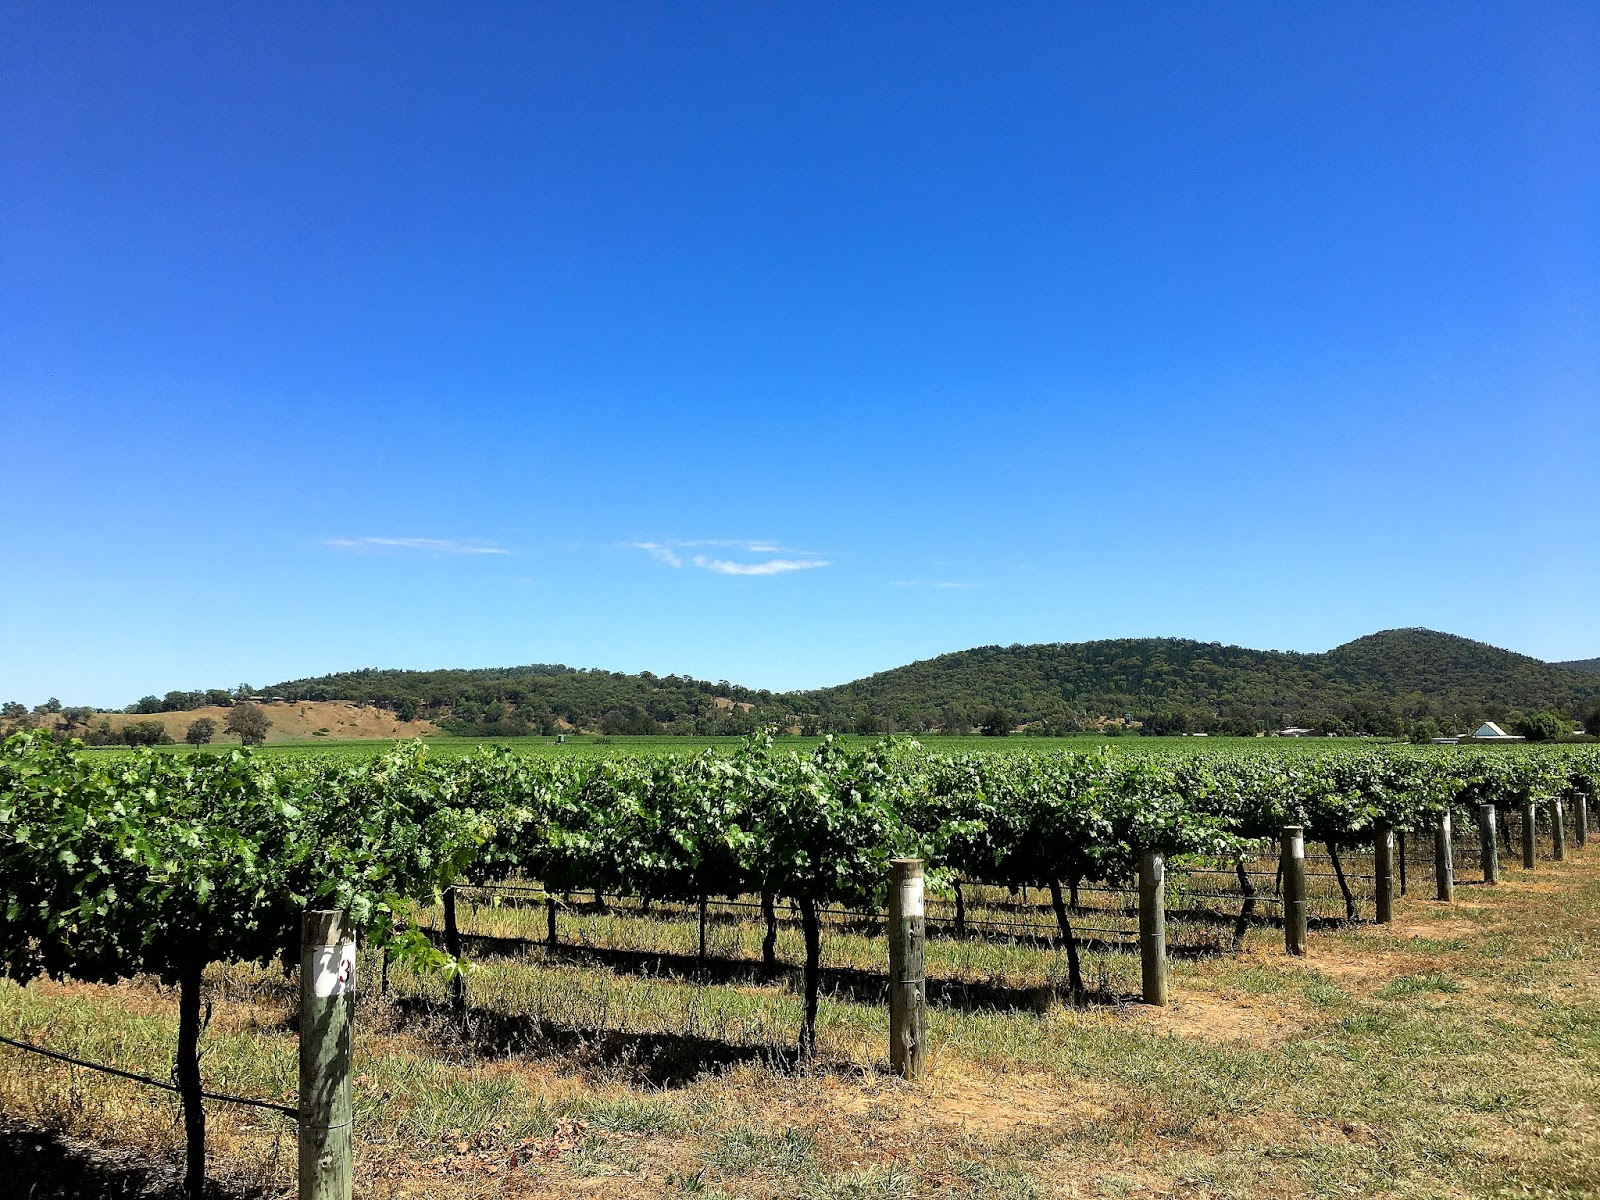 Come along with me for a day in Mudgee wine region in the Australian state of NSW where I discover the hidden gems of Mudgee Cellar Doors and Wineries.